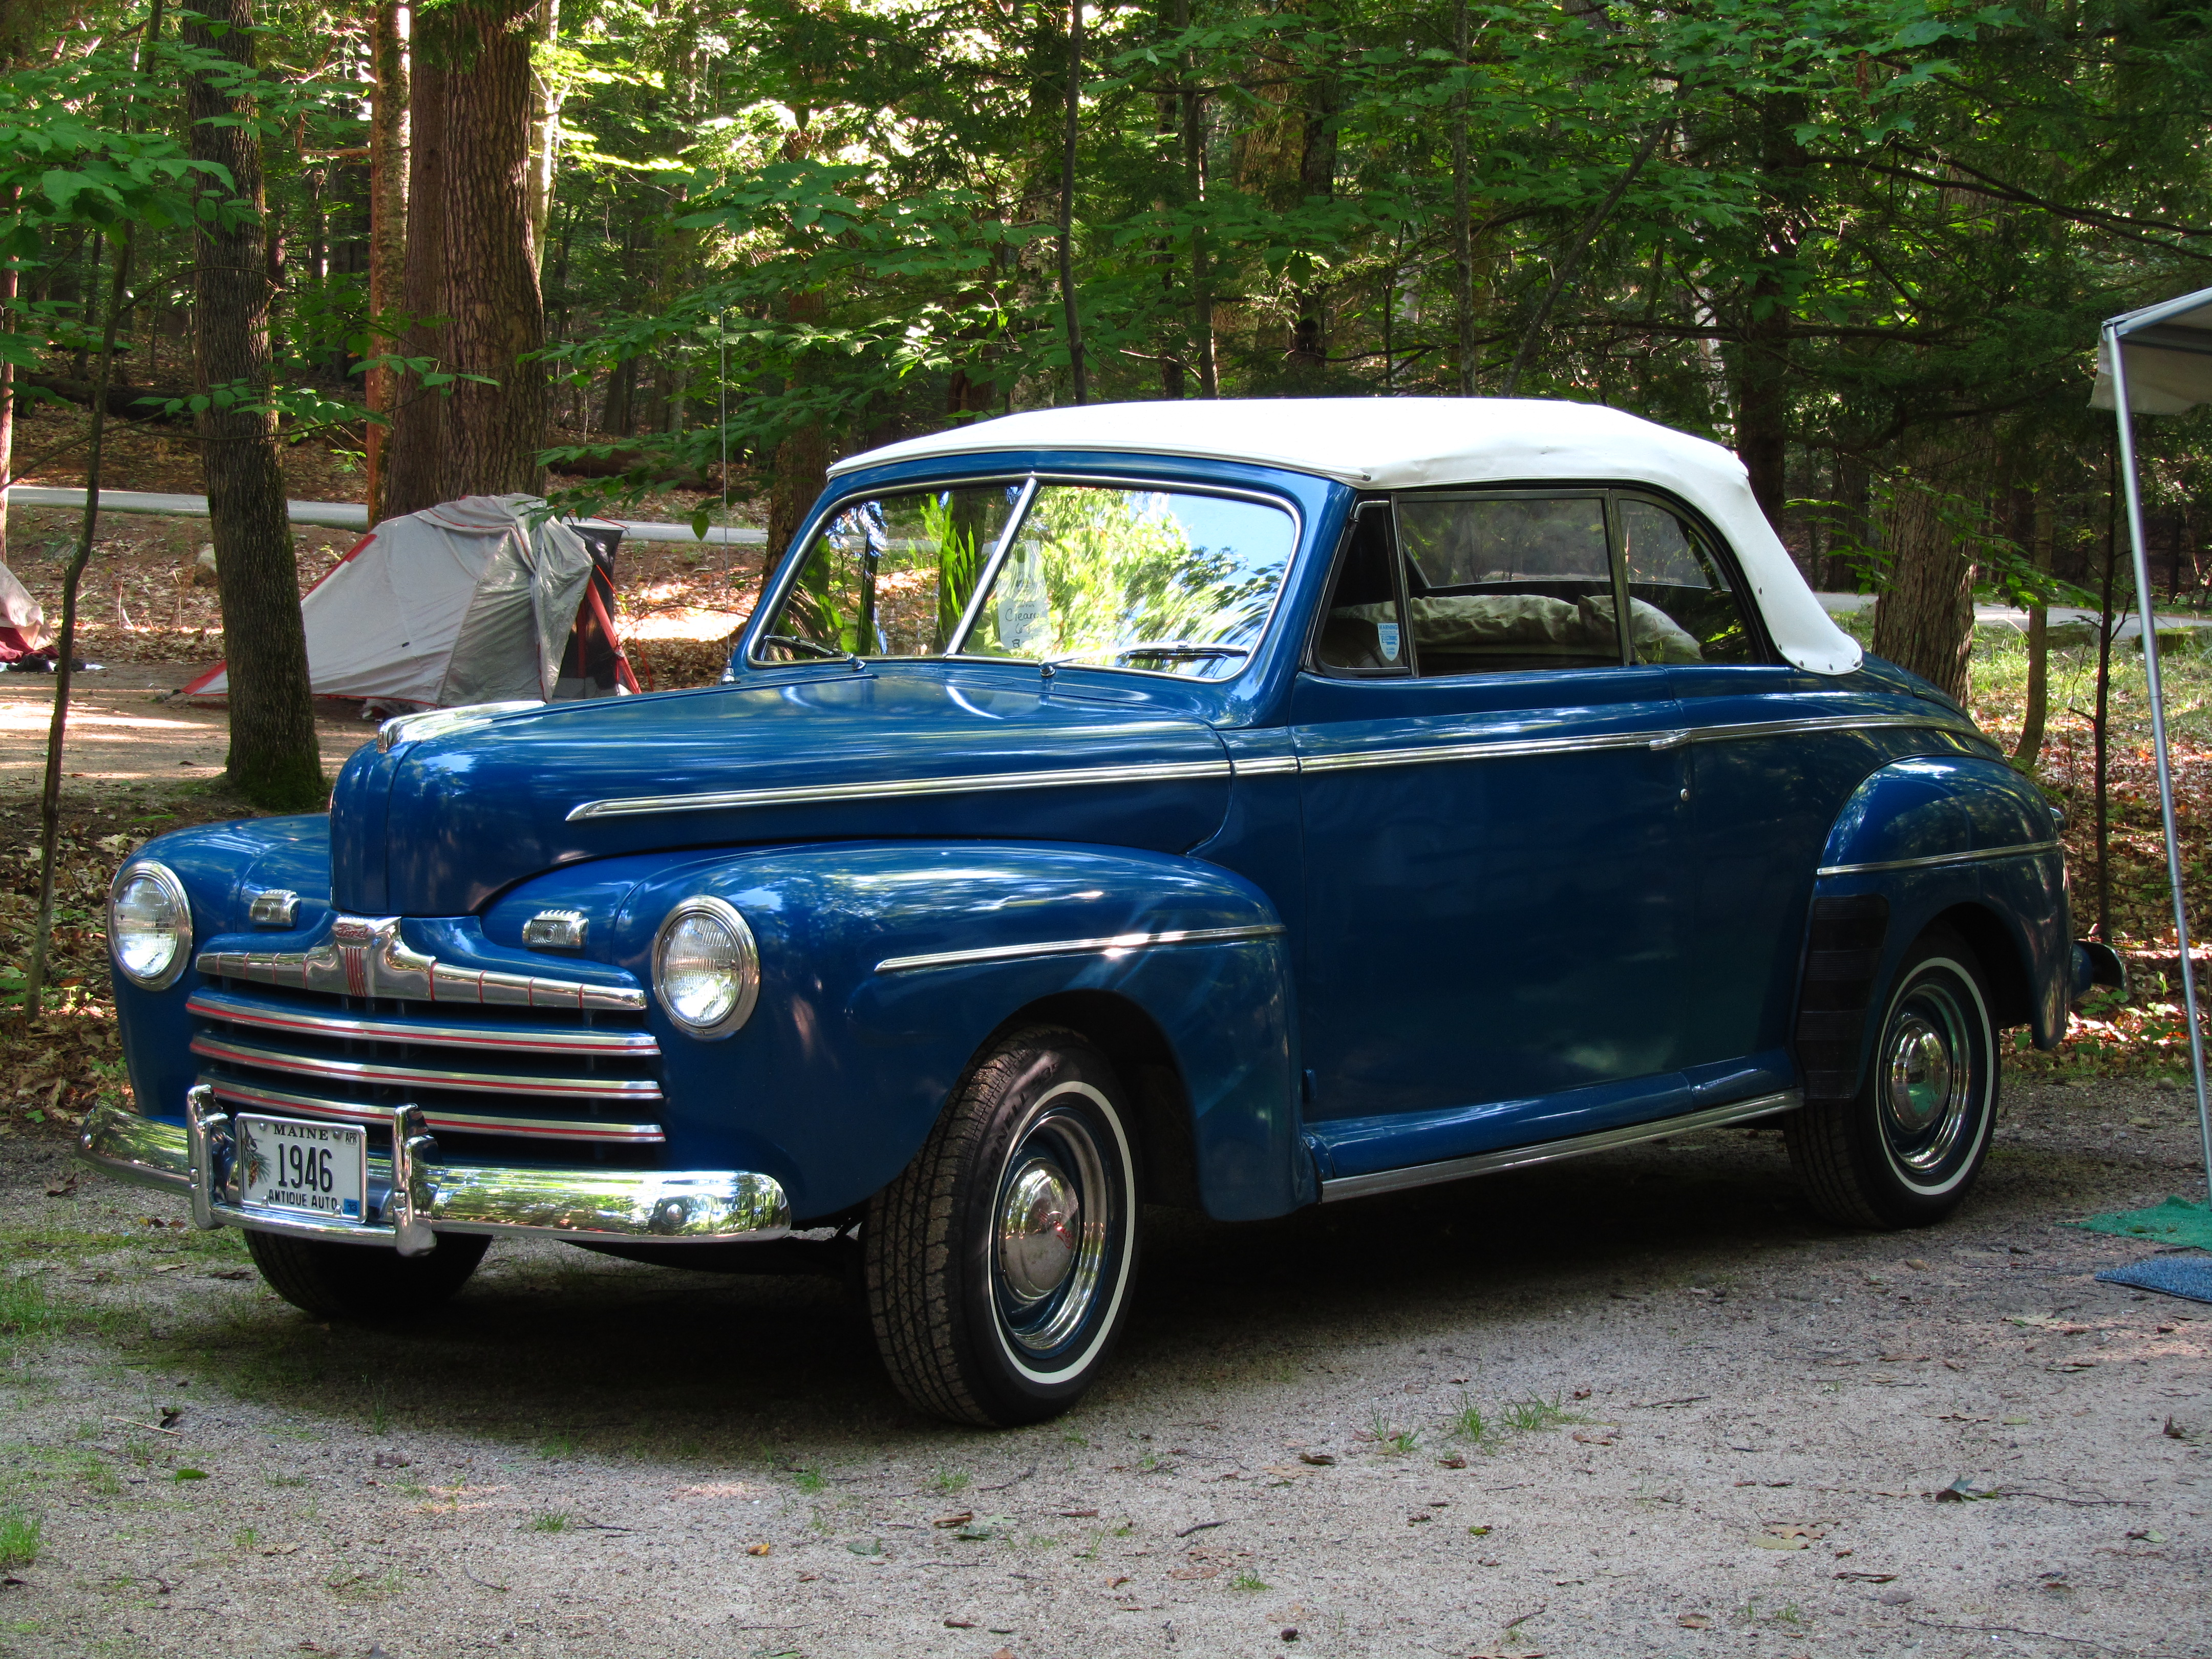 file blue 1946 ford super de luxe. Black Bedroom Furniture Sets. Home Design Ideas